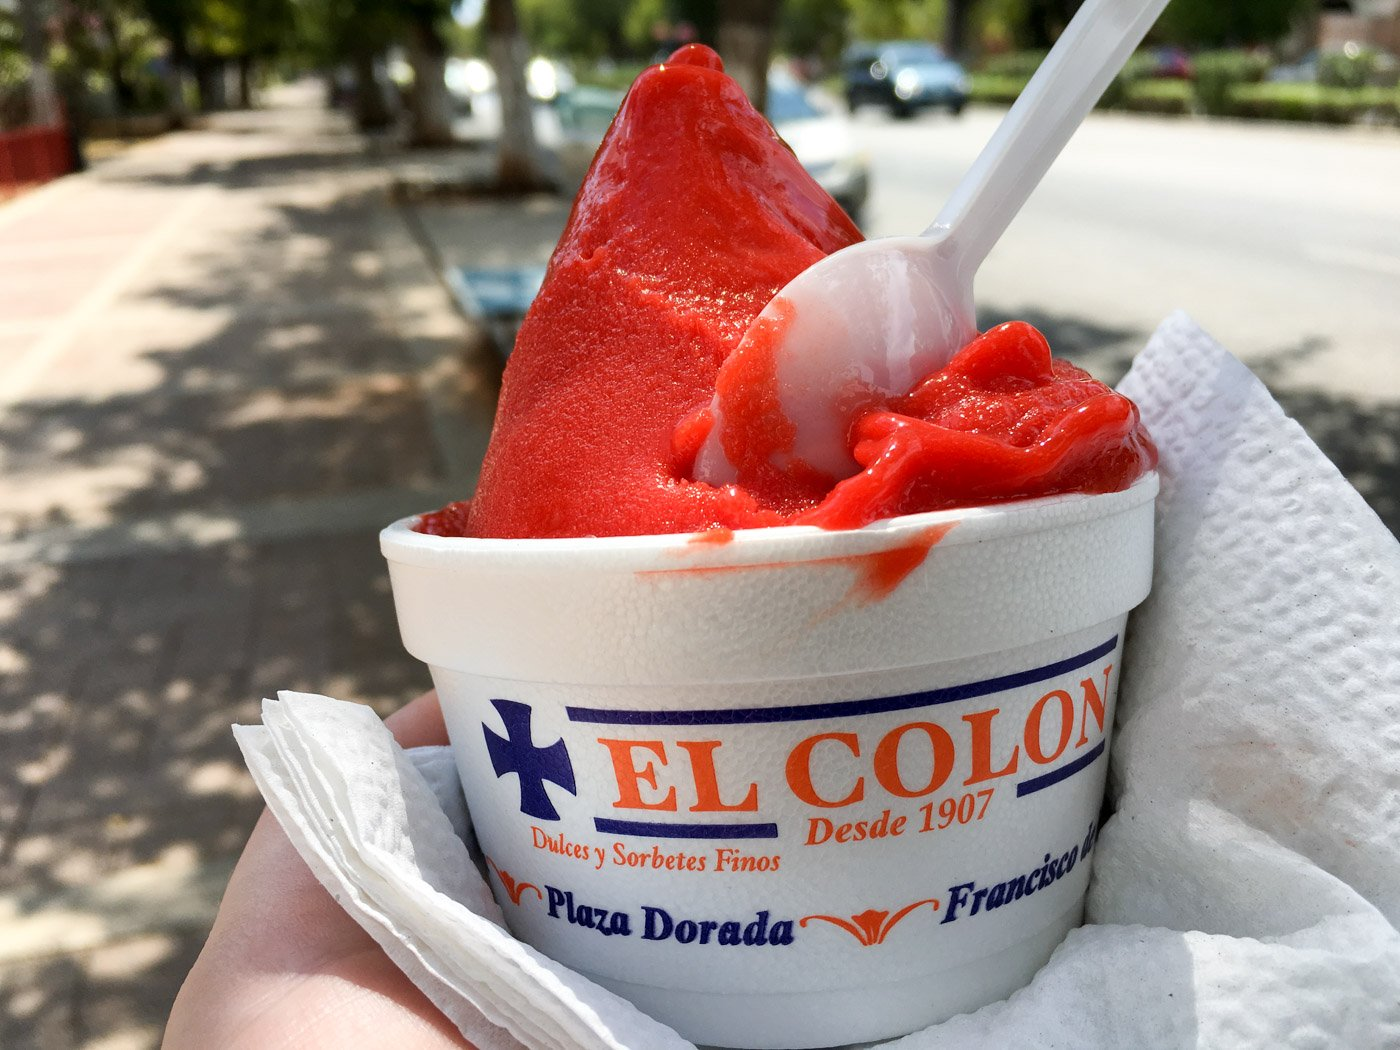 Merida is a city filled with delicious food and even better desserts. Here are some of the best restaruants in Merida Mexico for dessert!